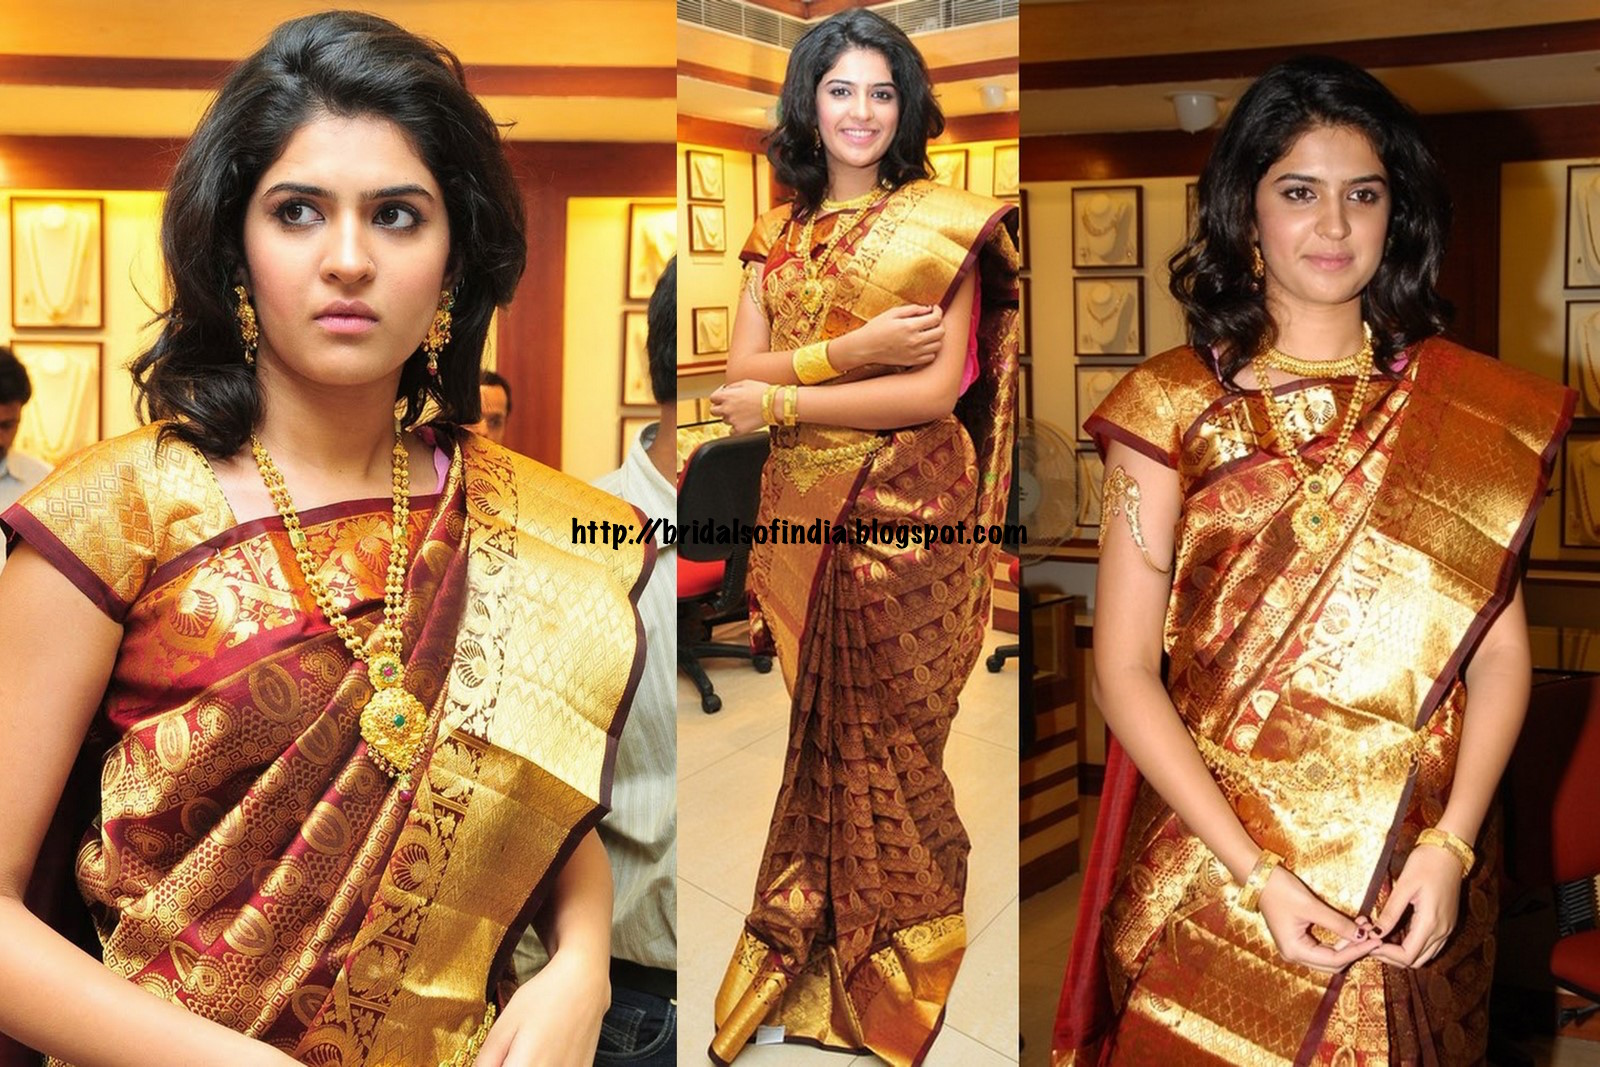 ce46f7a6b0ff7c Deeksha Seth Looks traditional in maroon kanchi patty with Heavy gold  bridal bridal saree at RS Brothers. South Indian actress ...